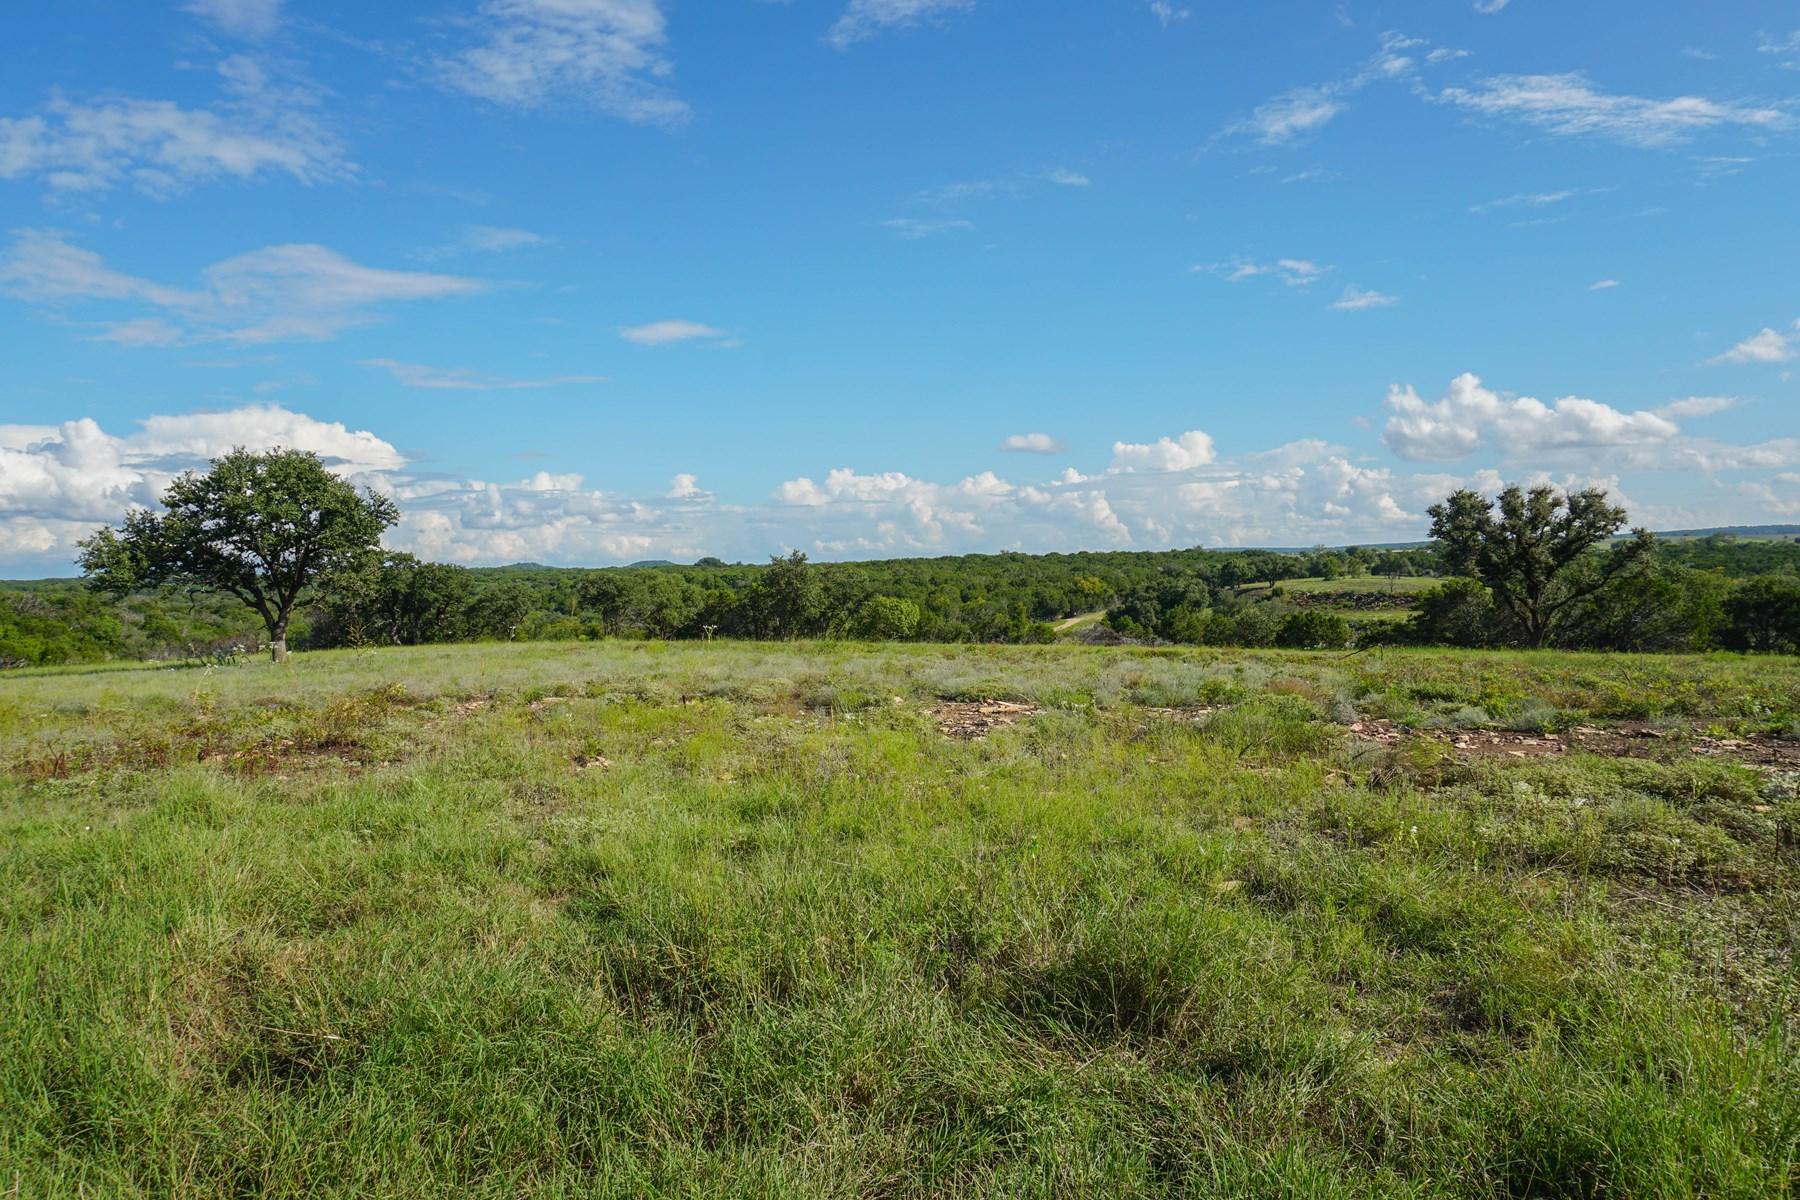 Acreage in Coryell County, Hilltop Views, Build Site